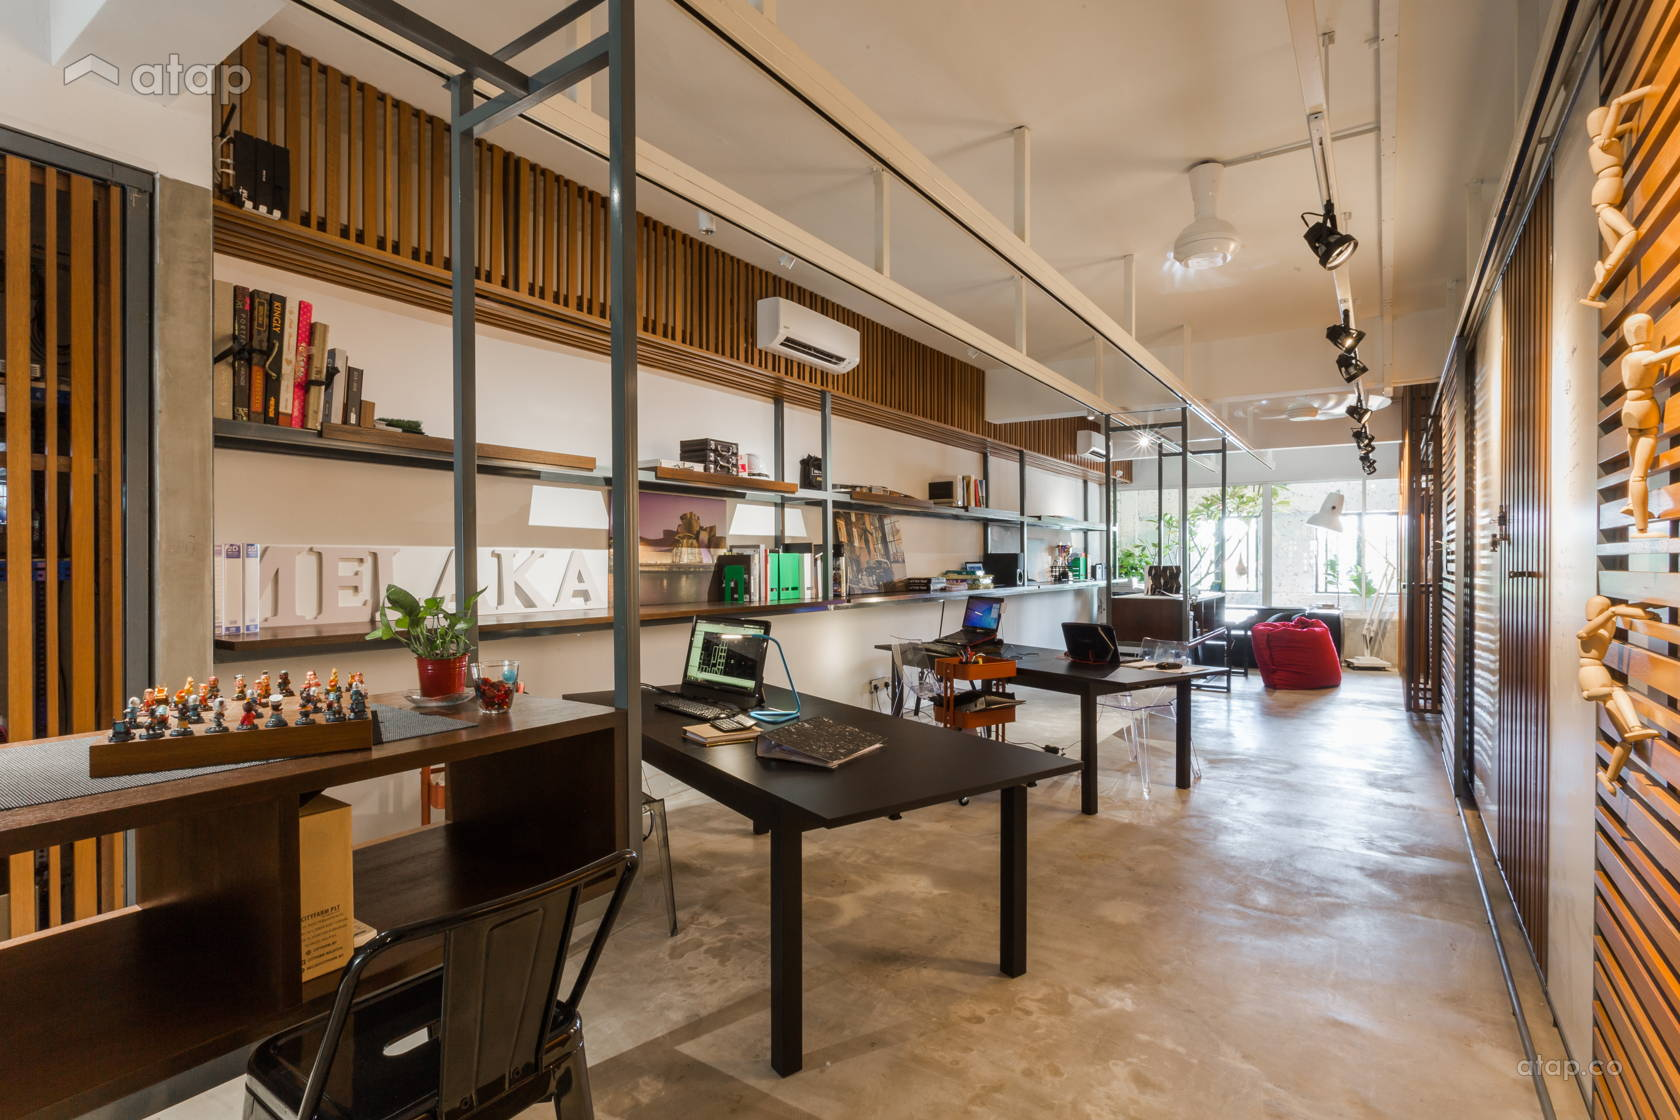 12e Design Studio Architectural Renovation Ideas Photos And Price In Malaysia Atap Co